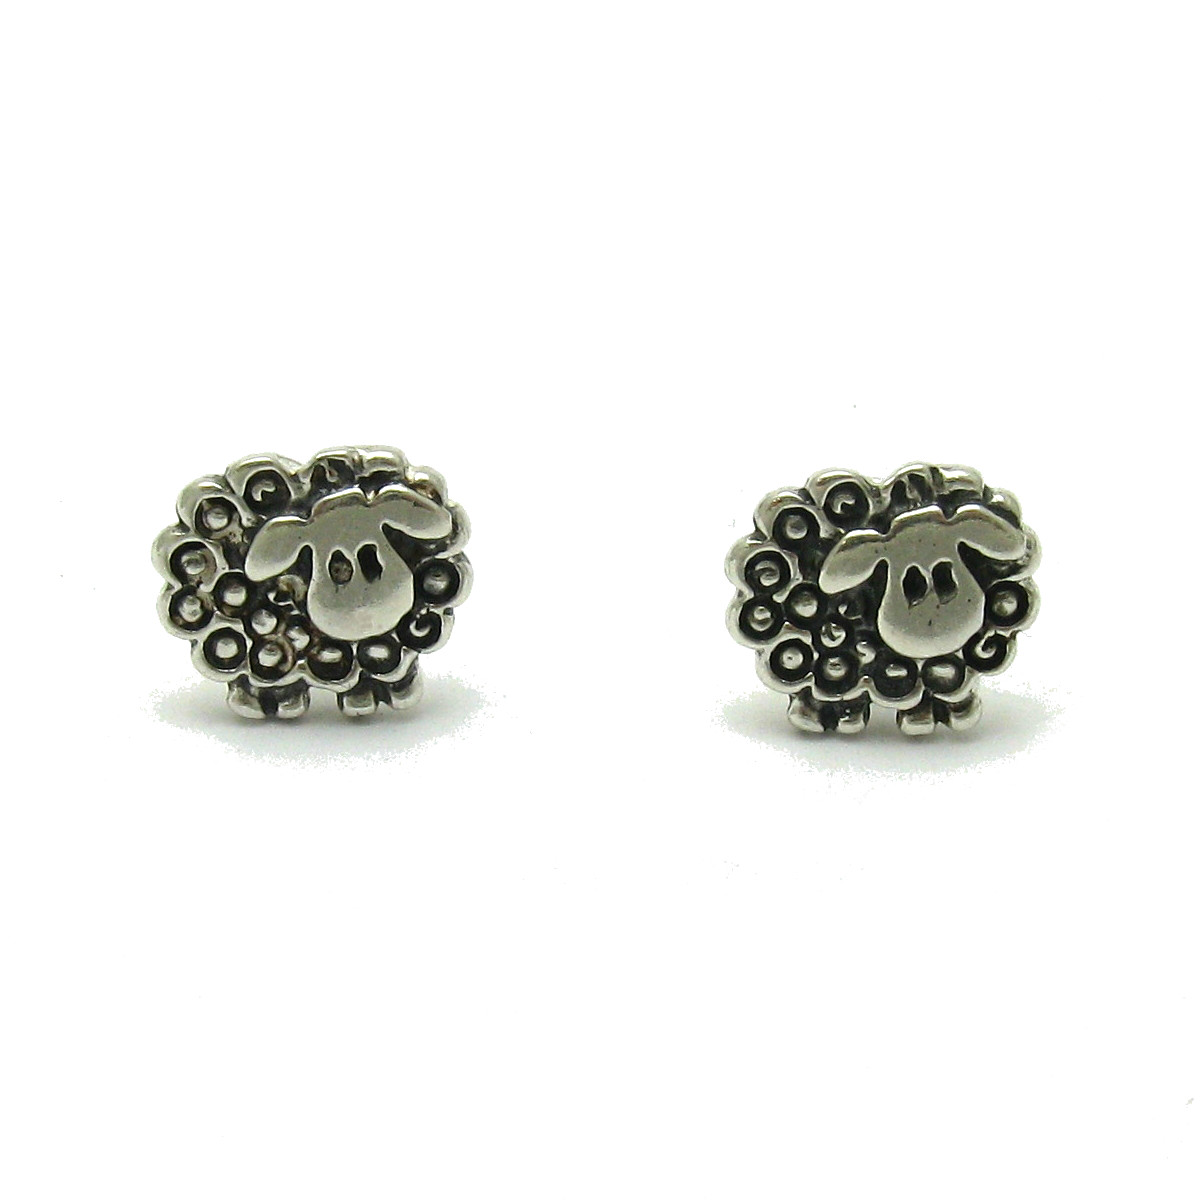 Silver earrings - E000608